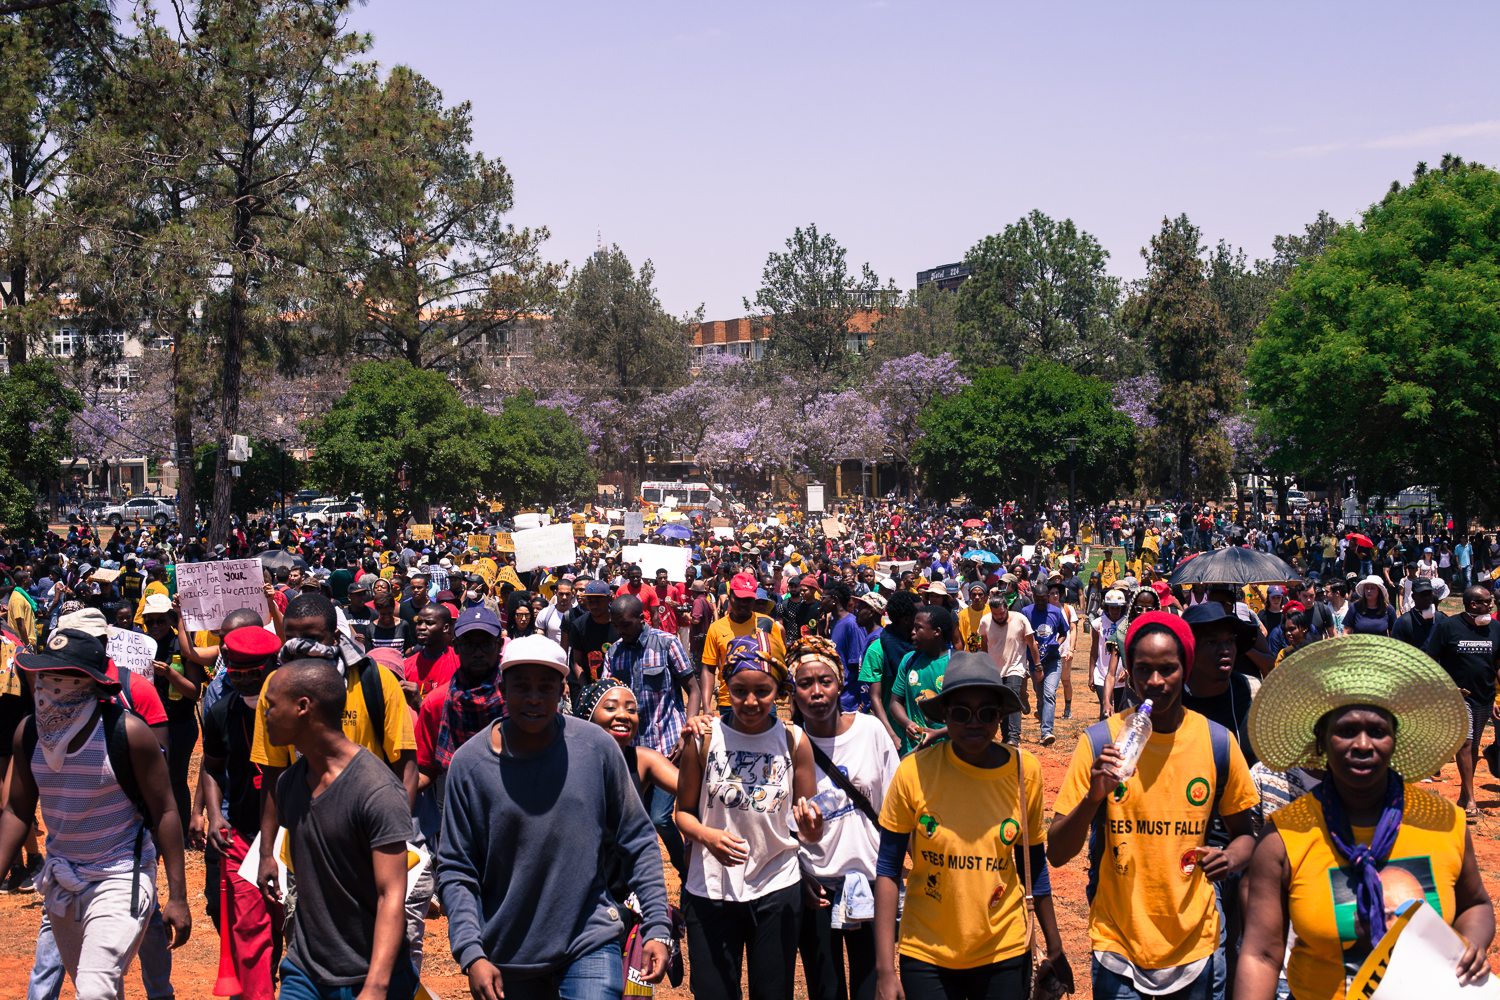 The culmination of the week-long protests by students at tertiary institutions around the country took place in South Africa's capital, Pretoria, on Friday. Many anticipated this to be a turning point in the country's 21-year-old democracy. [Aliki Saragas/Al Jazeera]